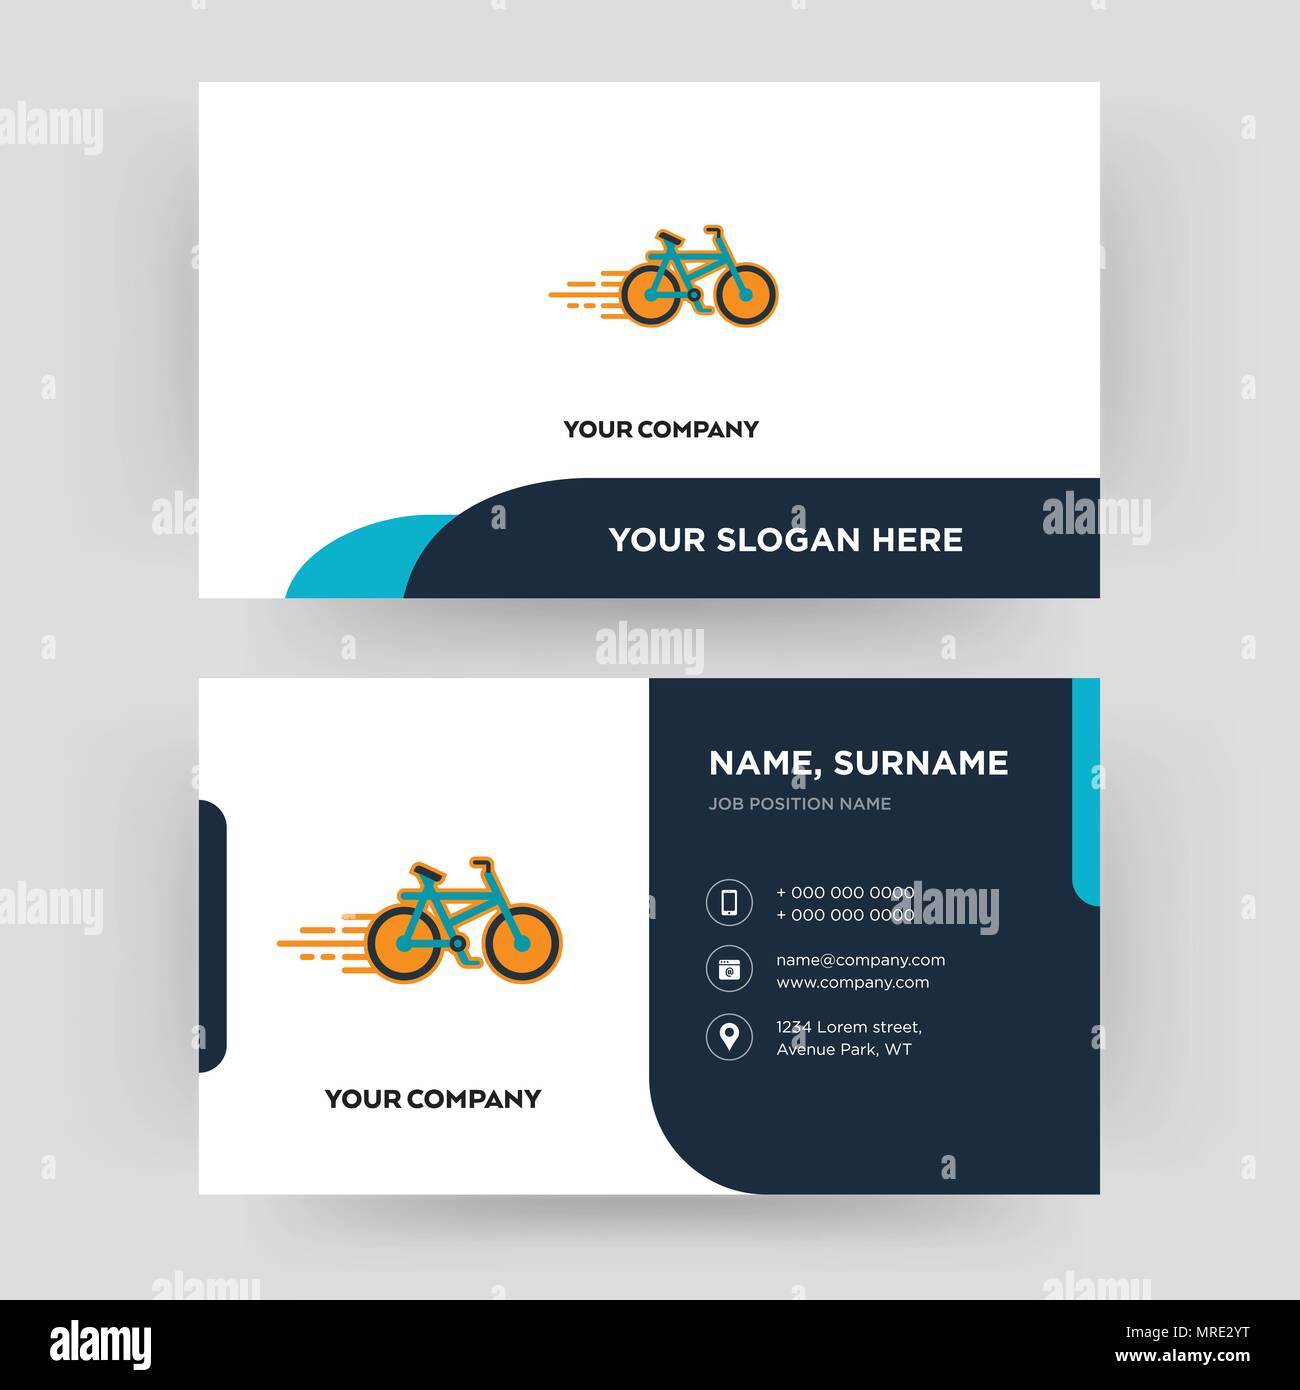 Bike shop business card design template visiting for your company bike shop business card design template visiting for your company modern creative and clean identity card vector colourmoves